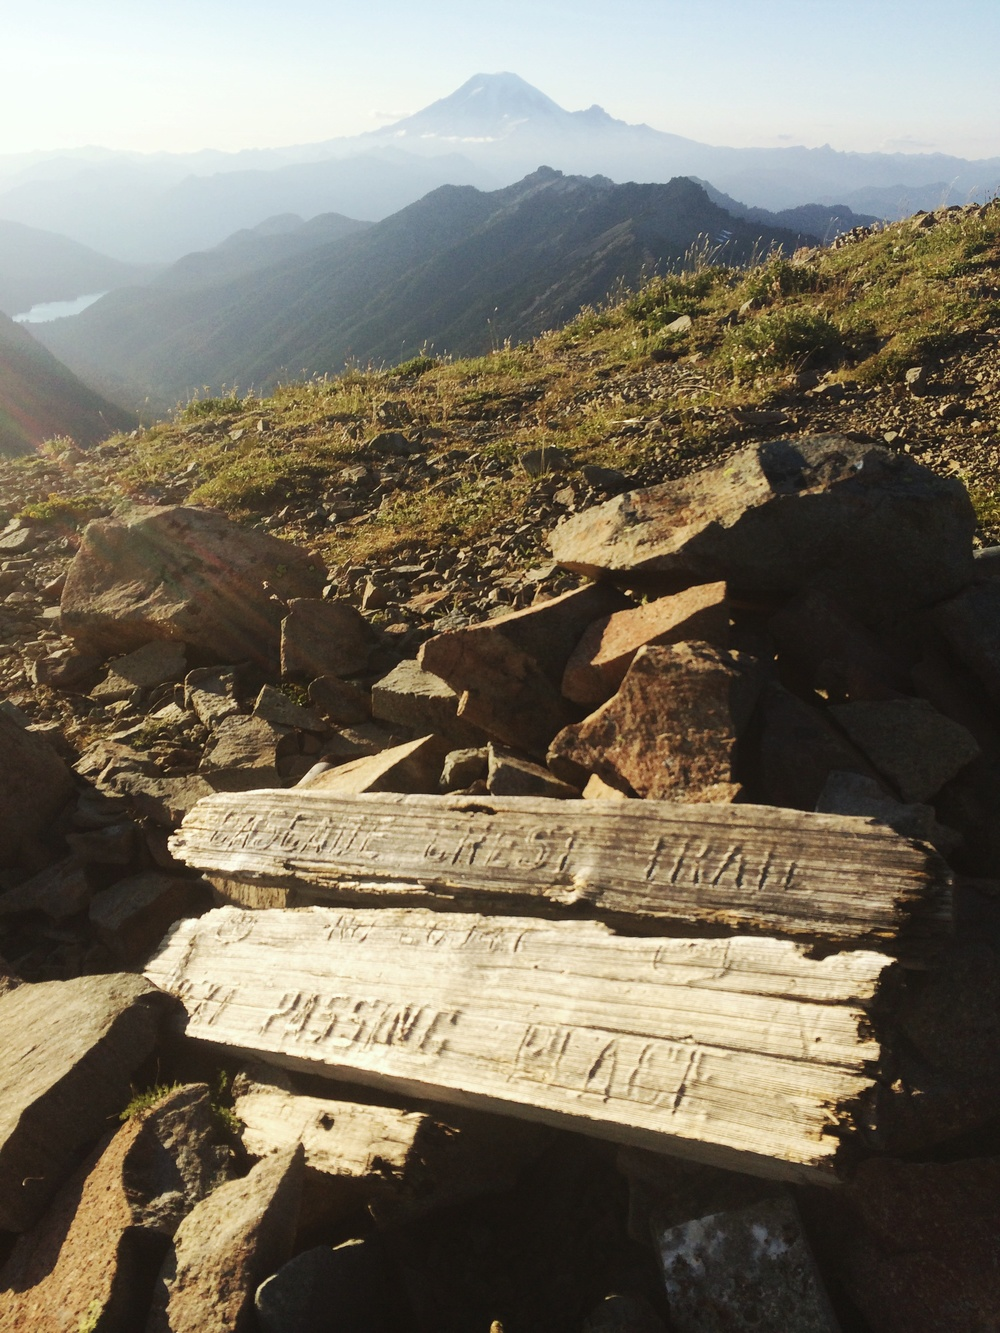 Nature takes it's toll on an old PCT sign. Mt. Rainier in the distance.